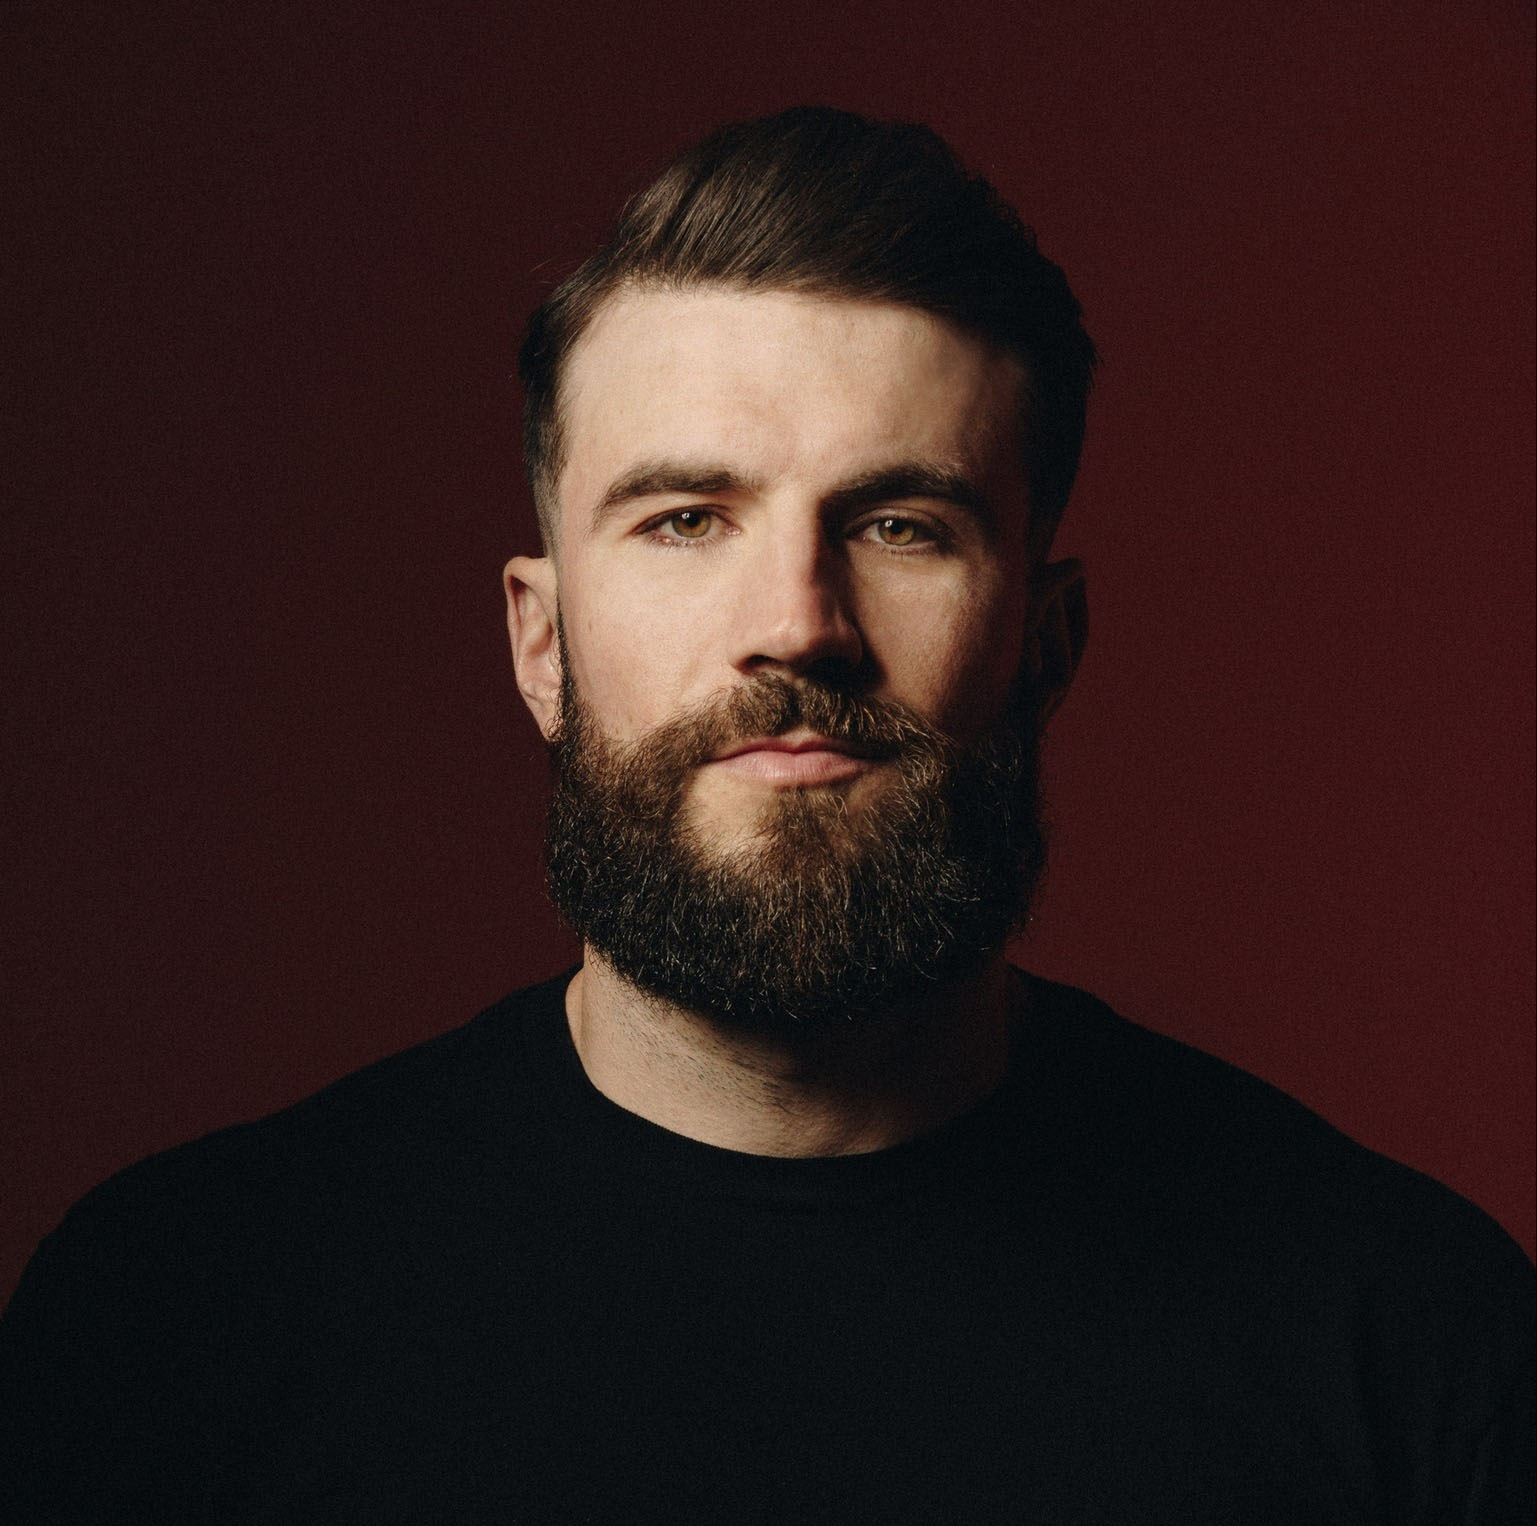 SAM HUNT IS LOOKING FORWARD TO PERFORMING AT THE INDY 500 THIS WEEKEND.